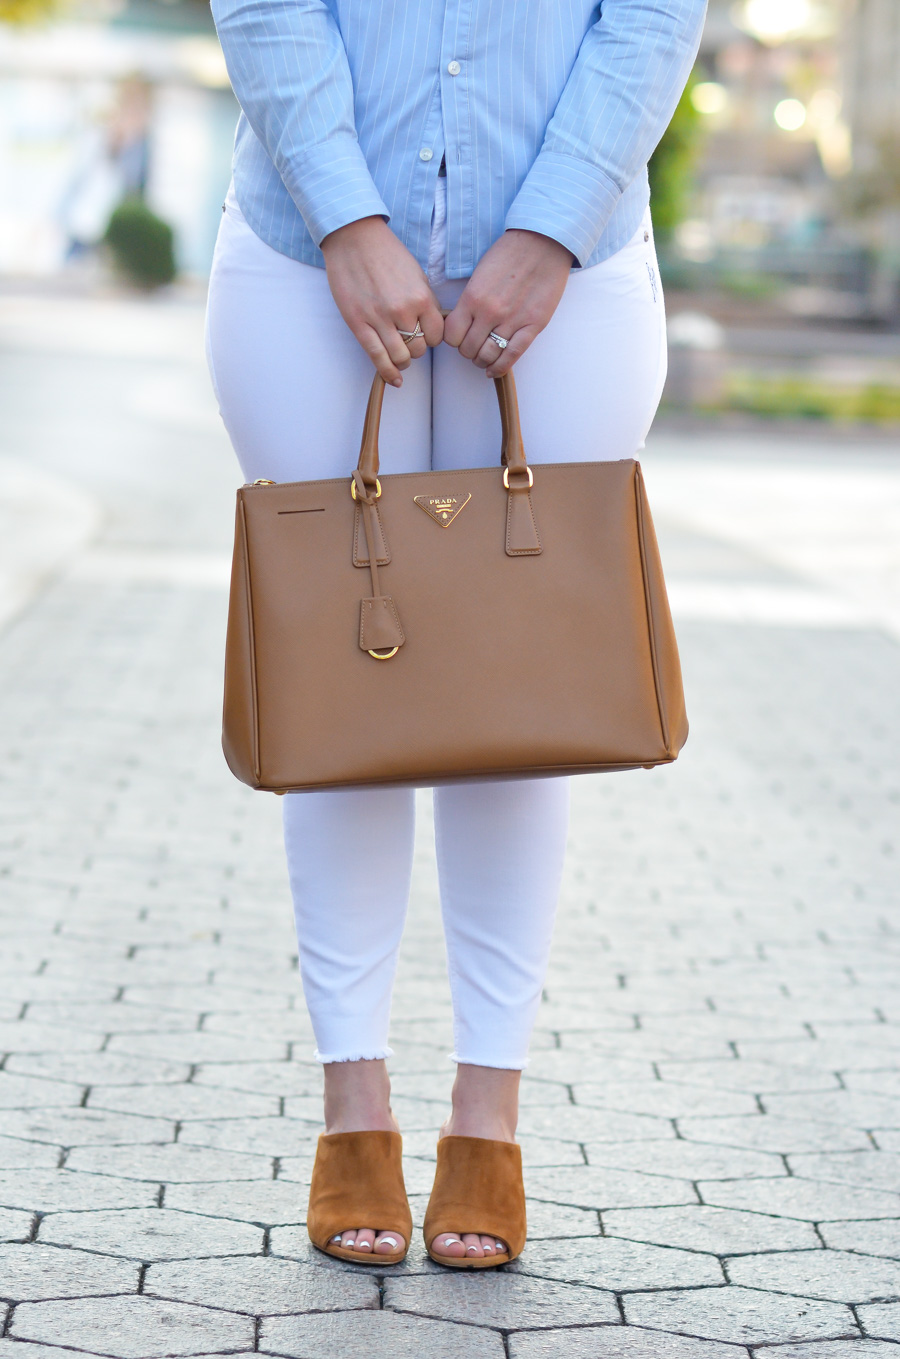 Peep Toe Mules Outfit | White Skinny Jeans + Button Down Shirt {Prada Saffiano Tote}